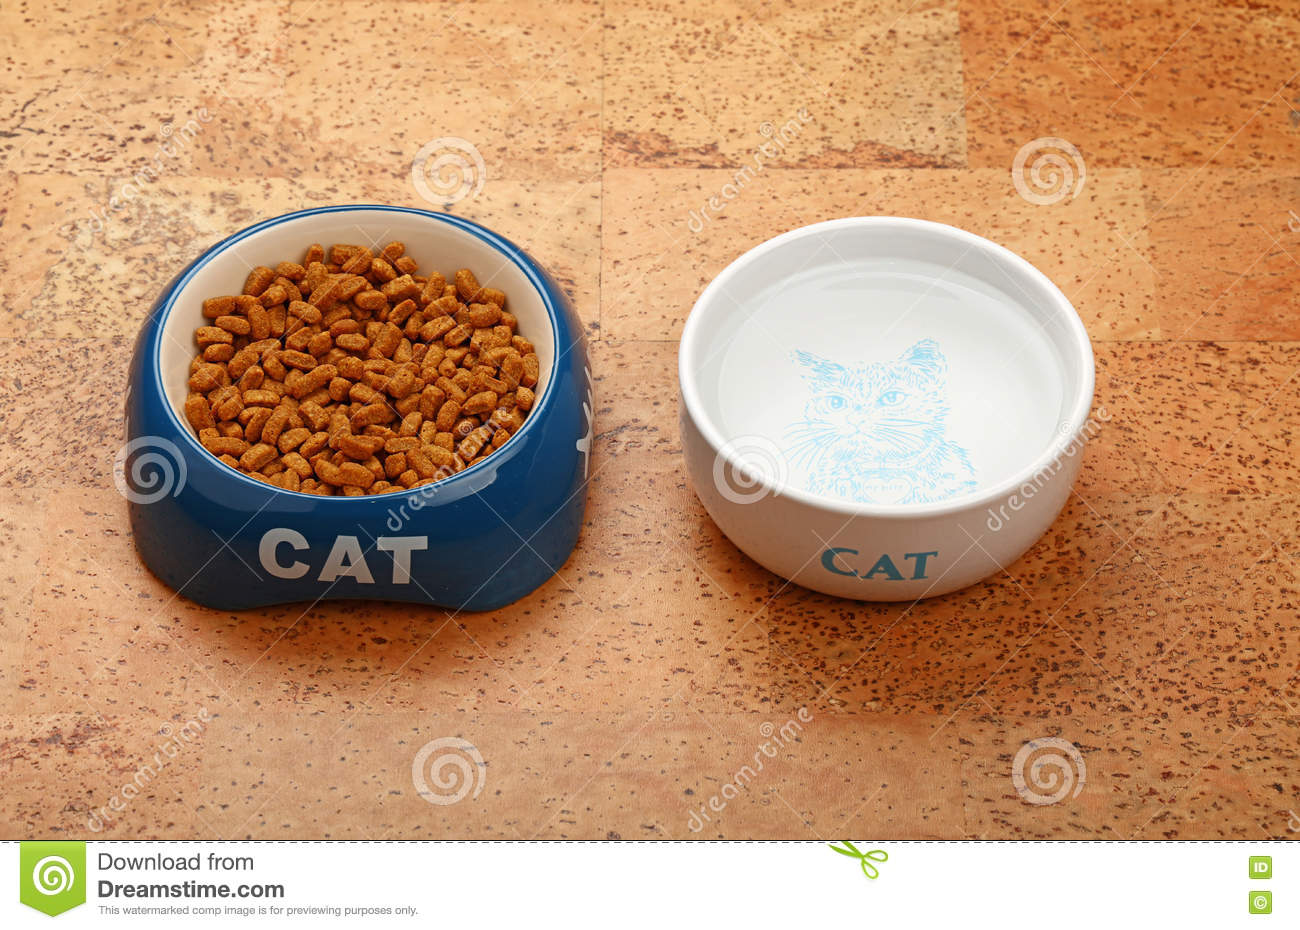 Put cat food on cock casually